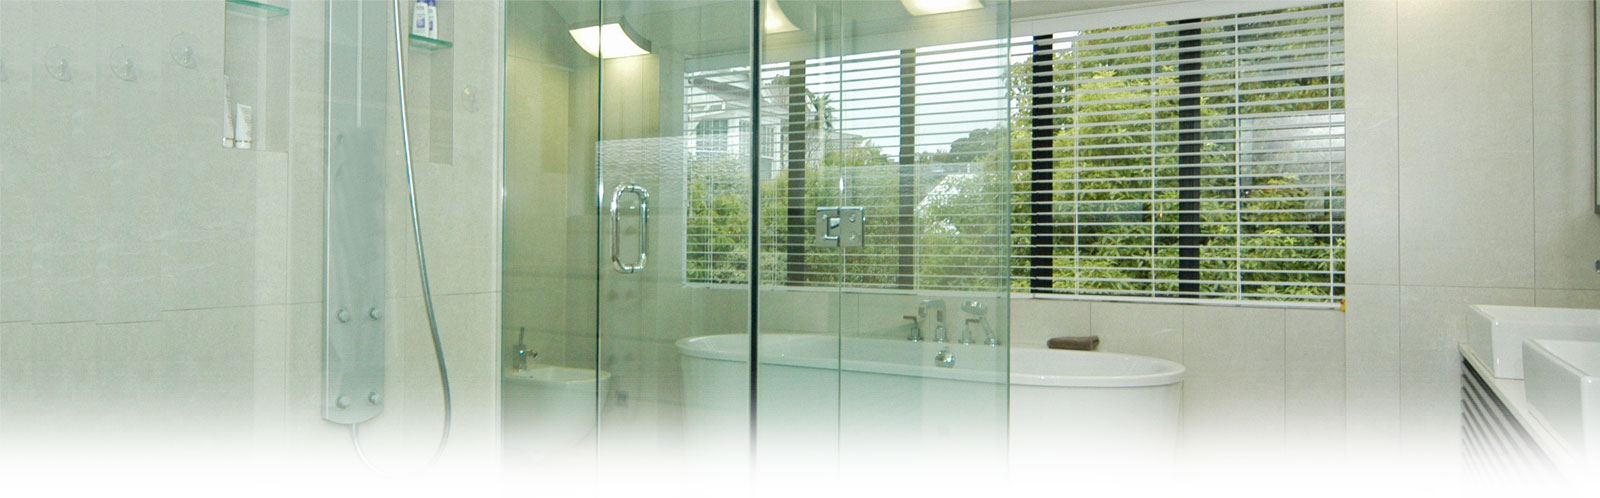 Frameless Glass Shower Doors - Custom Glass Railings - Glass ...